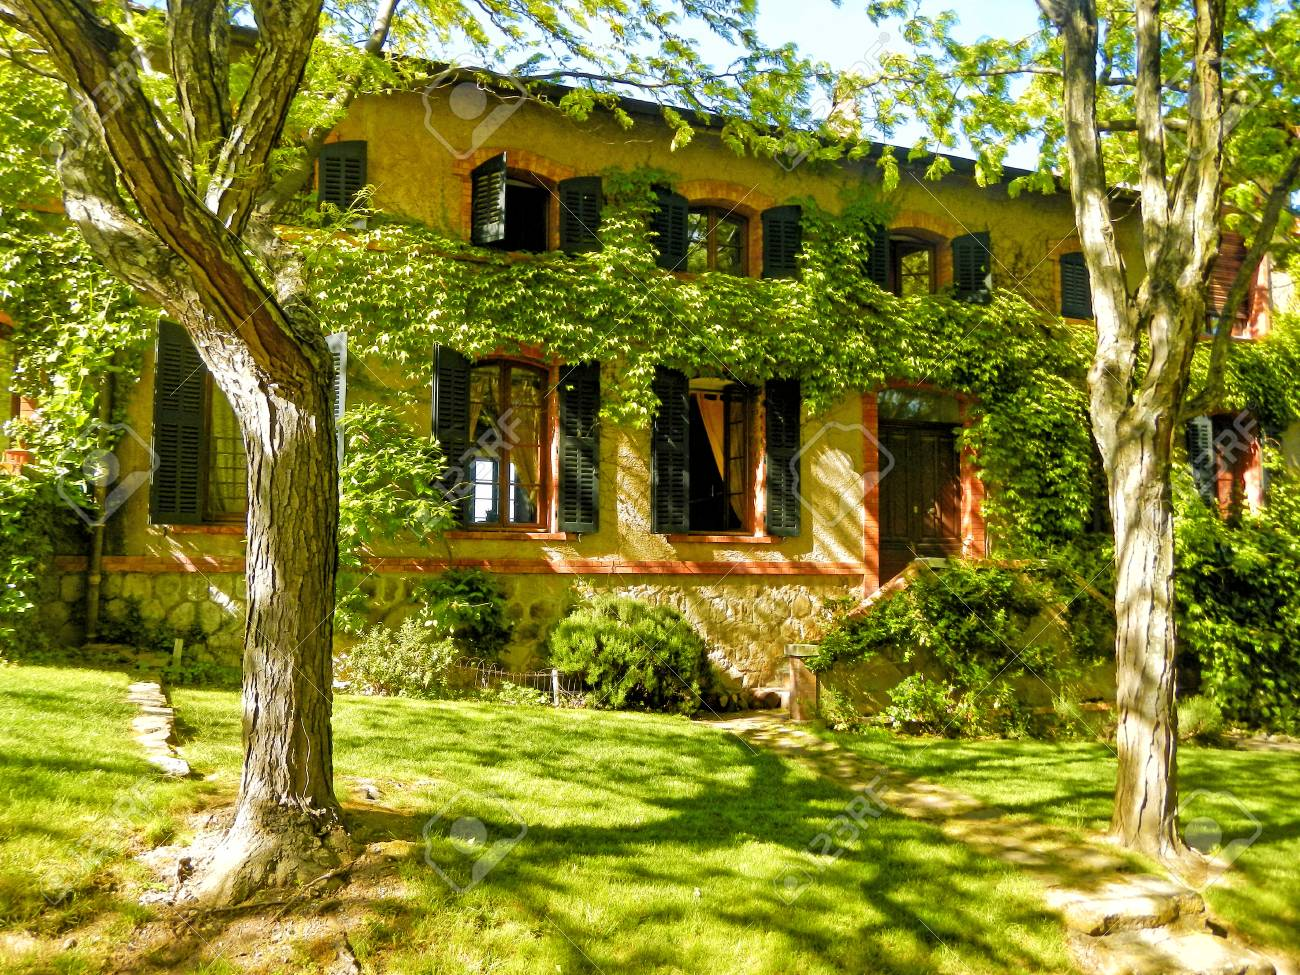 Old French Farmhouse With Shutters Windows In The Garden Provence